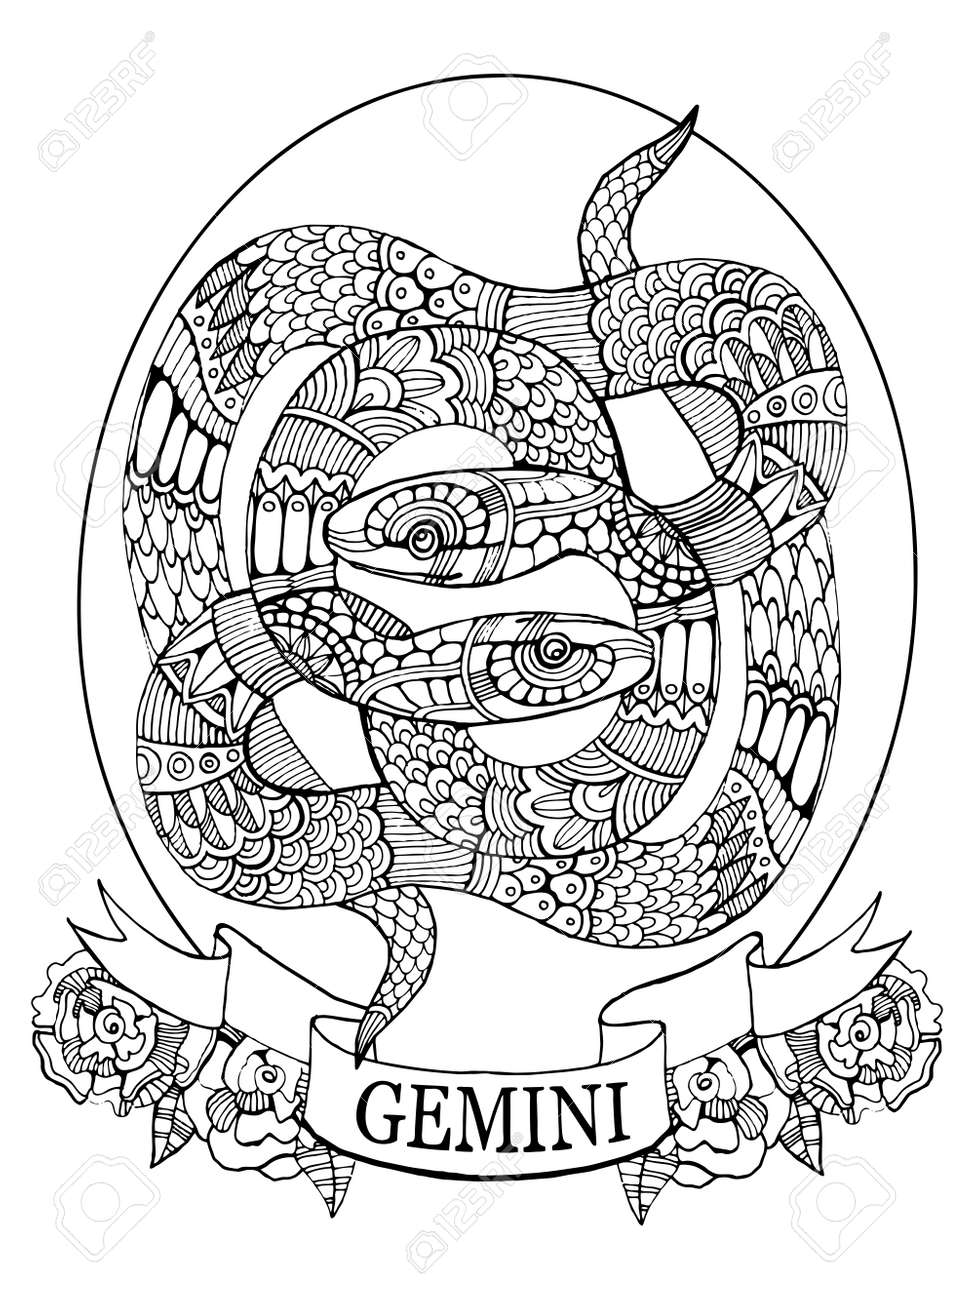 Gemini Zodiac Sign Coloring Book For Adults Vector Illustration